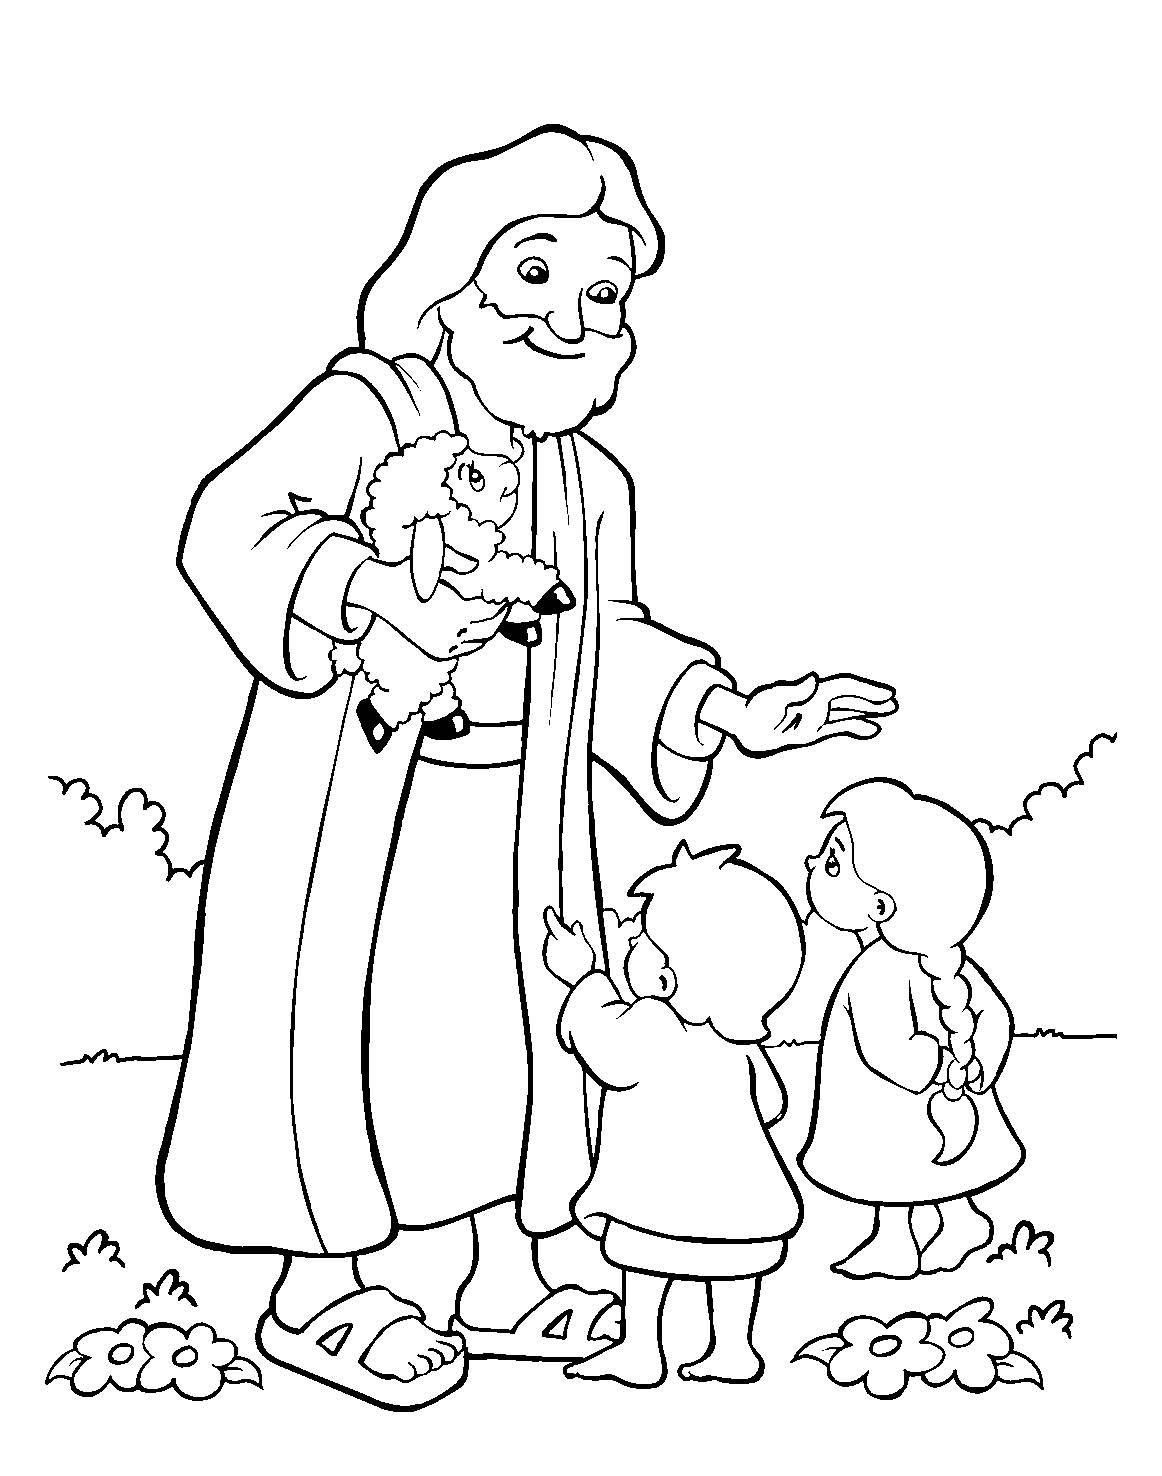 Best Sunday School Lessons Coloring Pages Inspirational Image for Download Of 28 Sunday School Coloring Pages for Preschoolers Jesus Loves Gallery